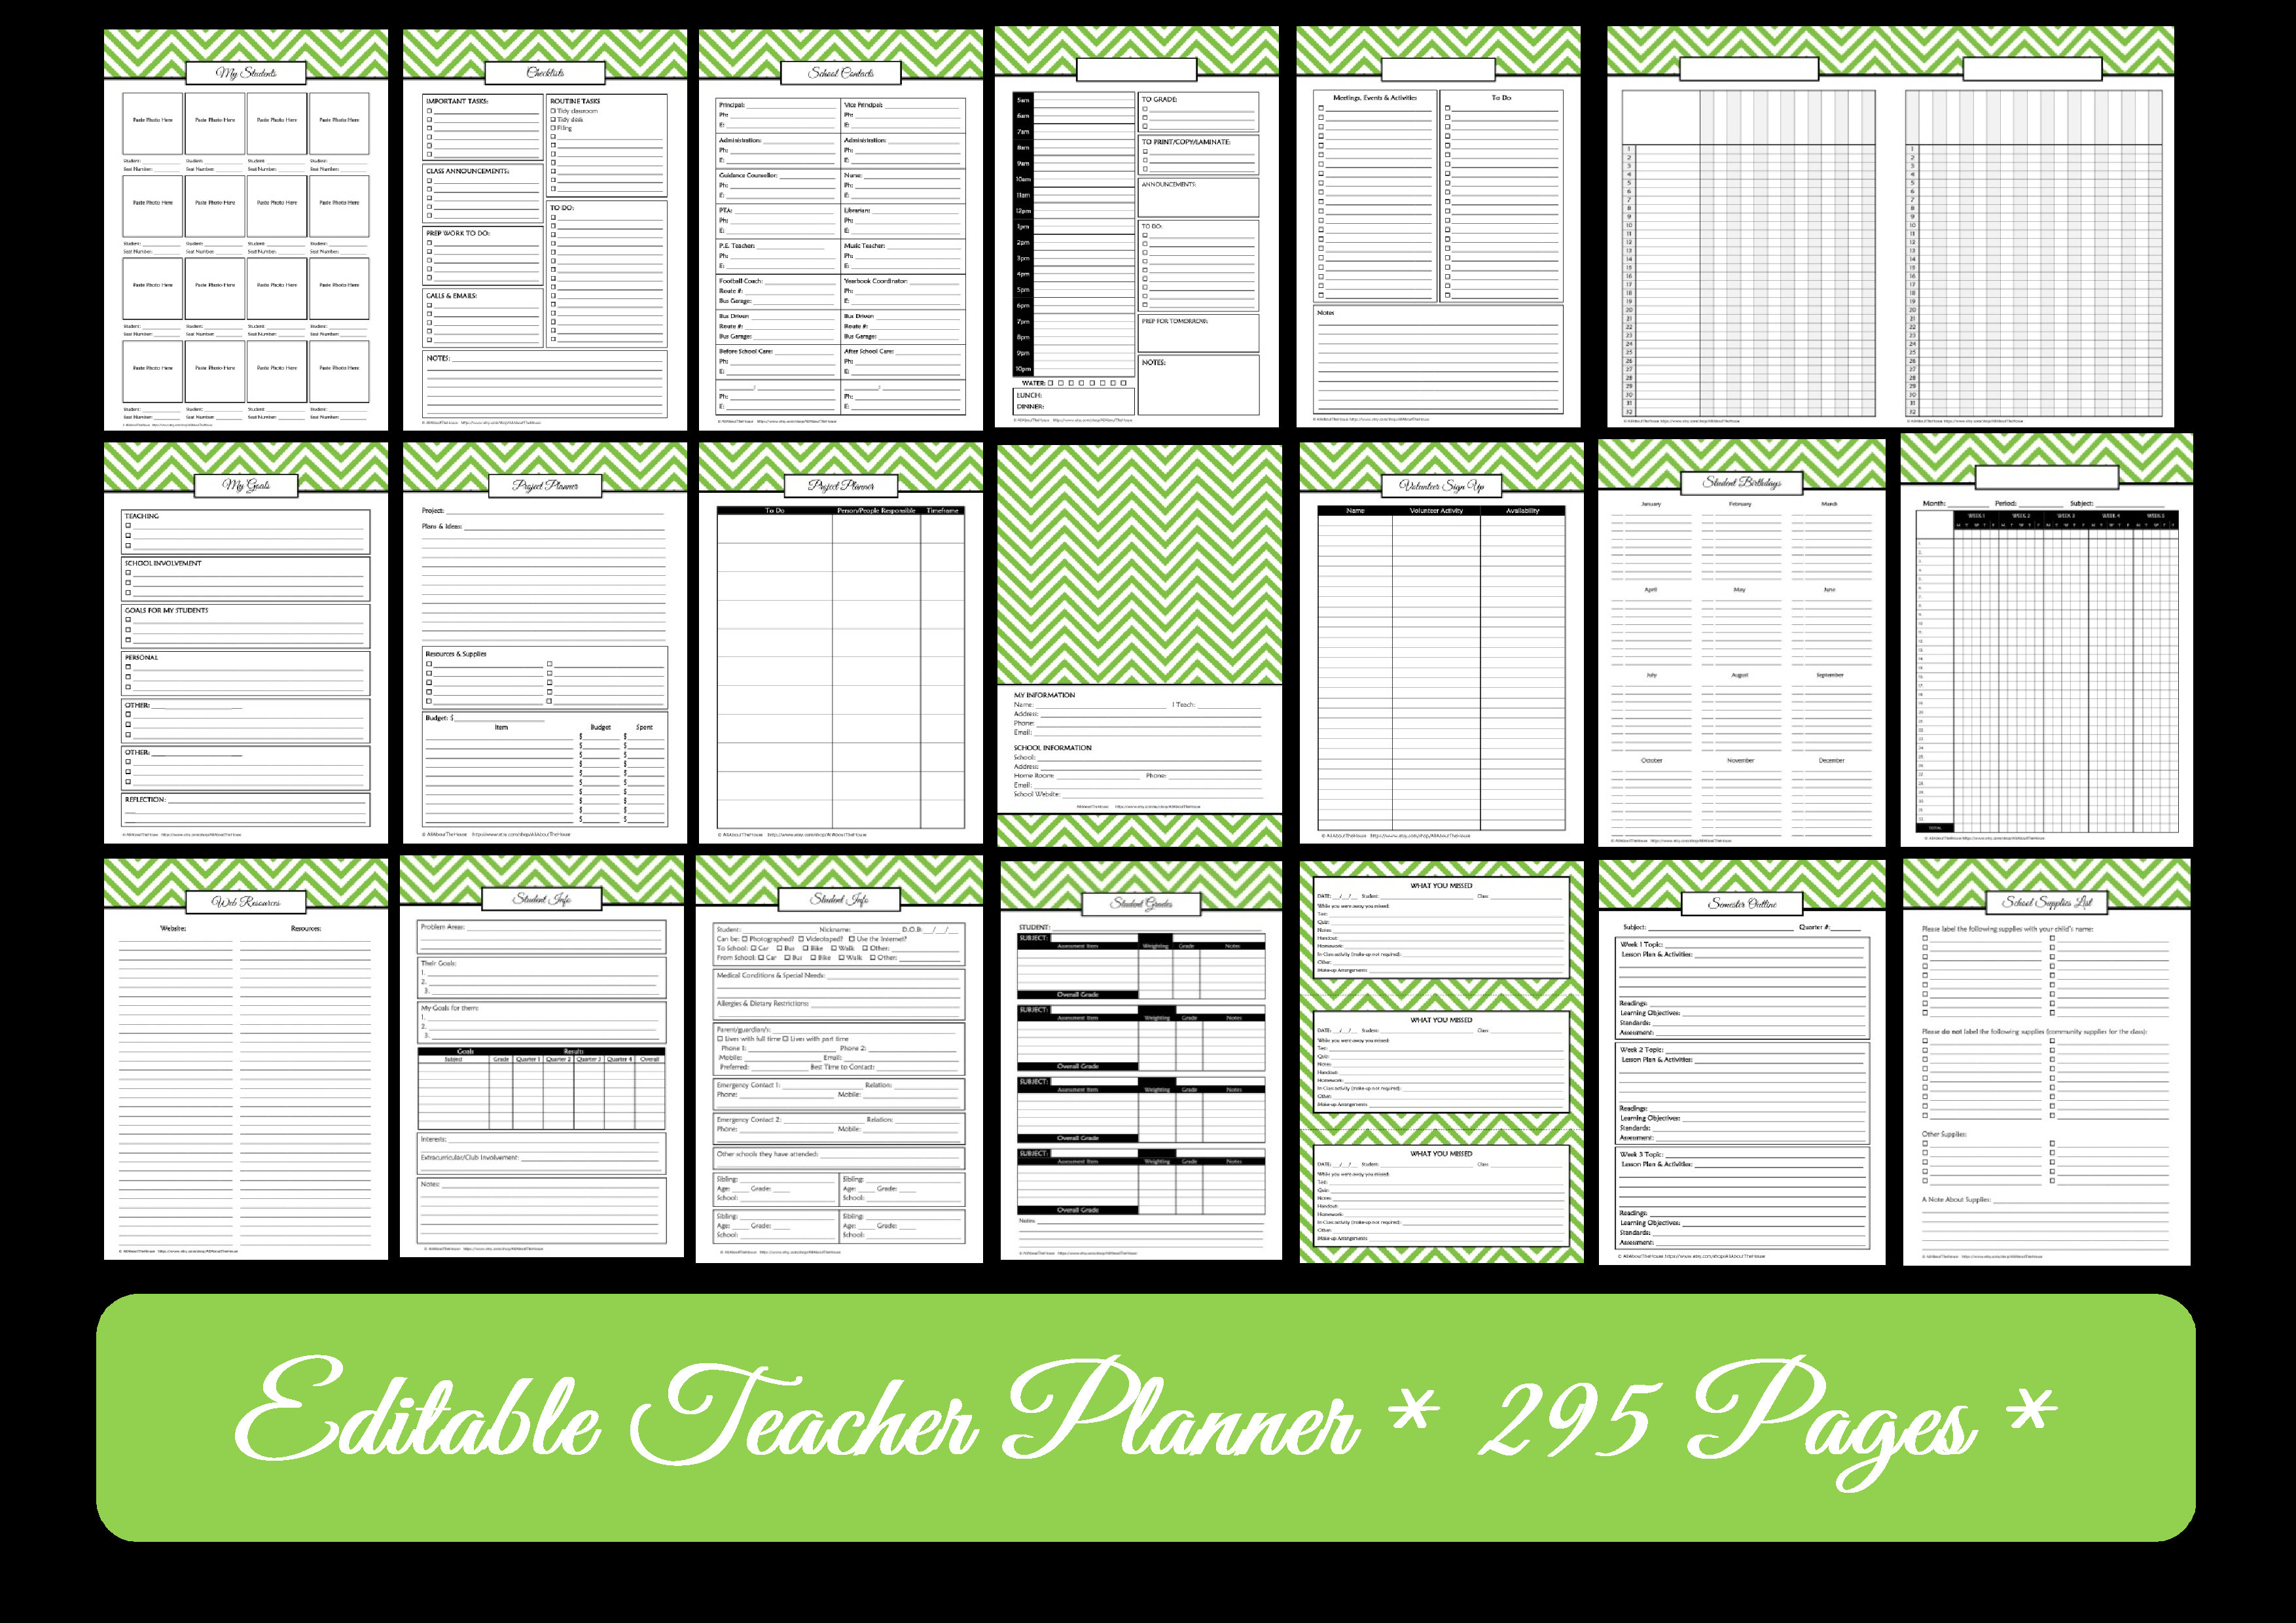 image regarding Printable Teacher Planner referred to as Trainer Planner Printables - Editable Chevron - All Relating to